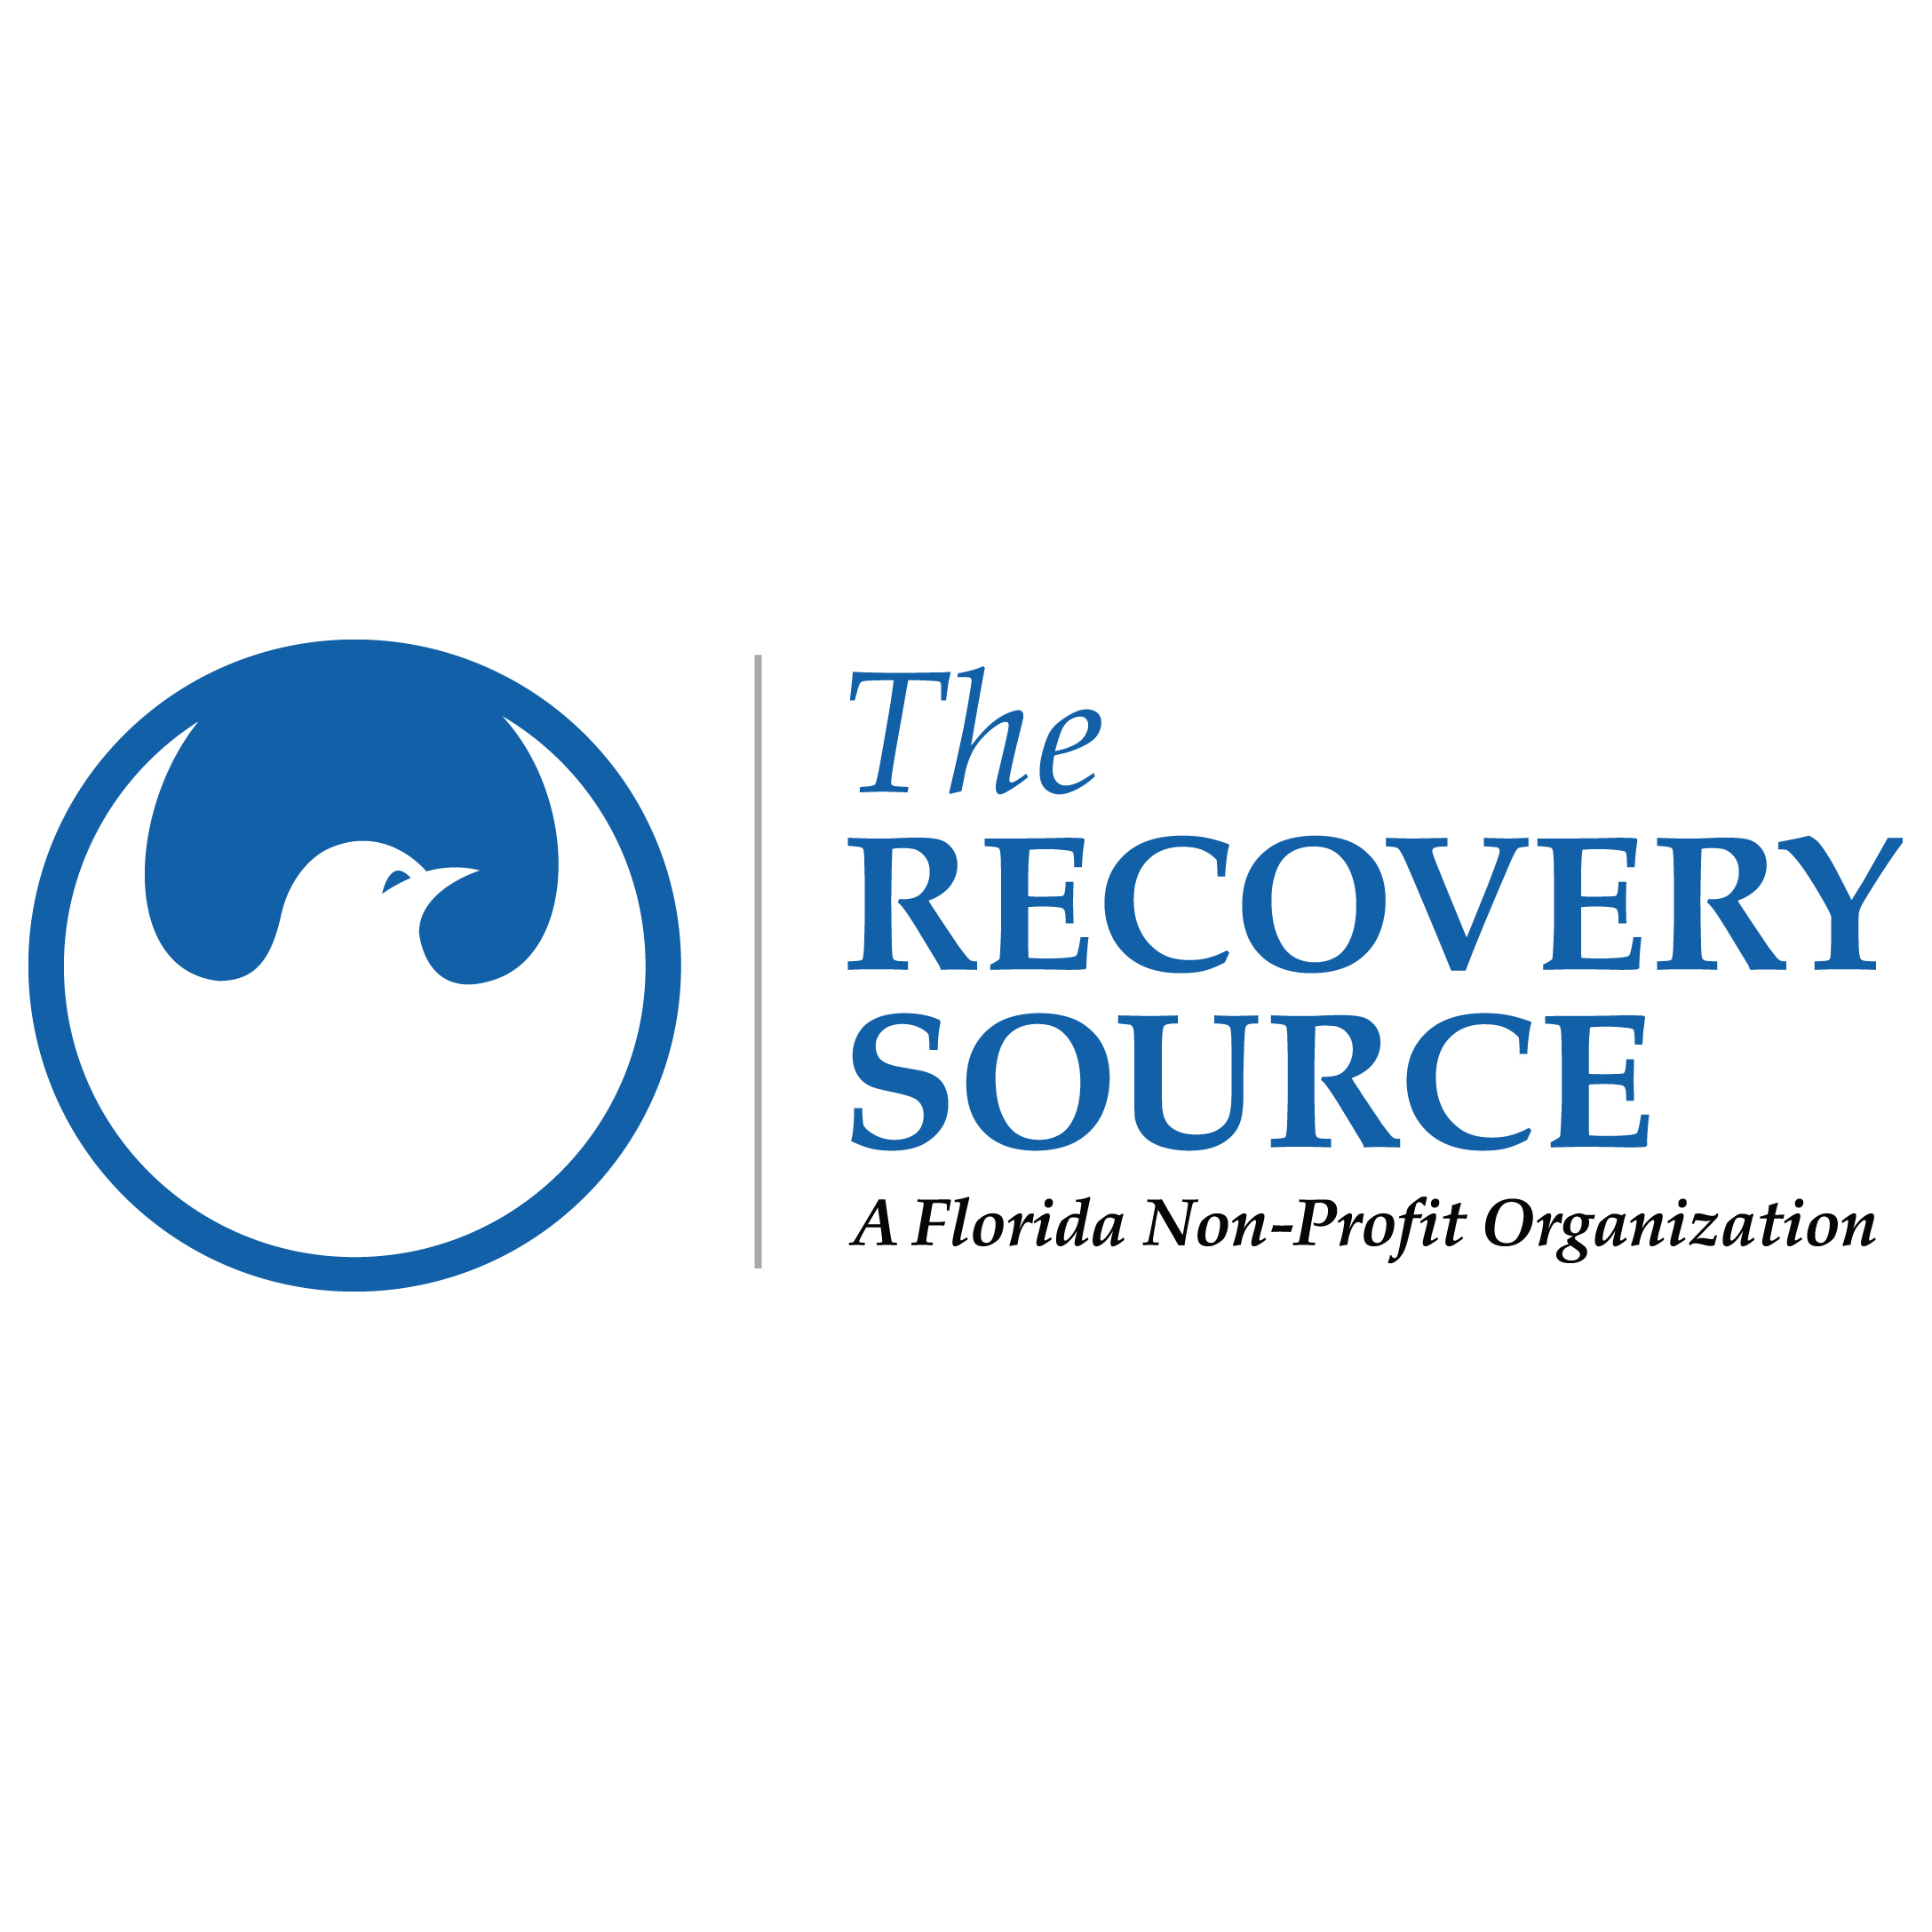 The Recovery Source